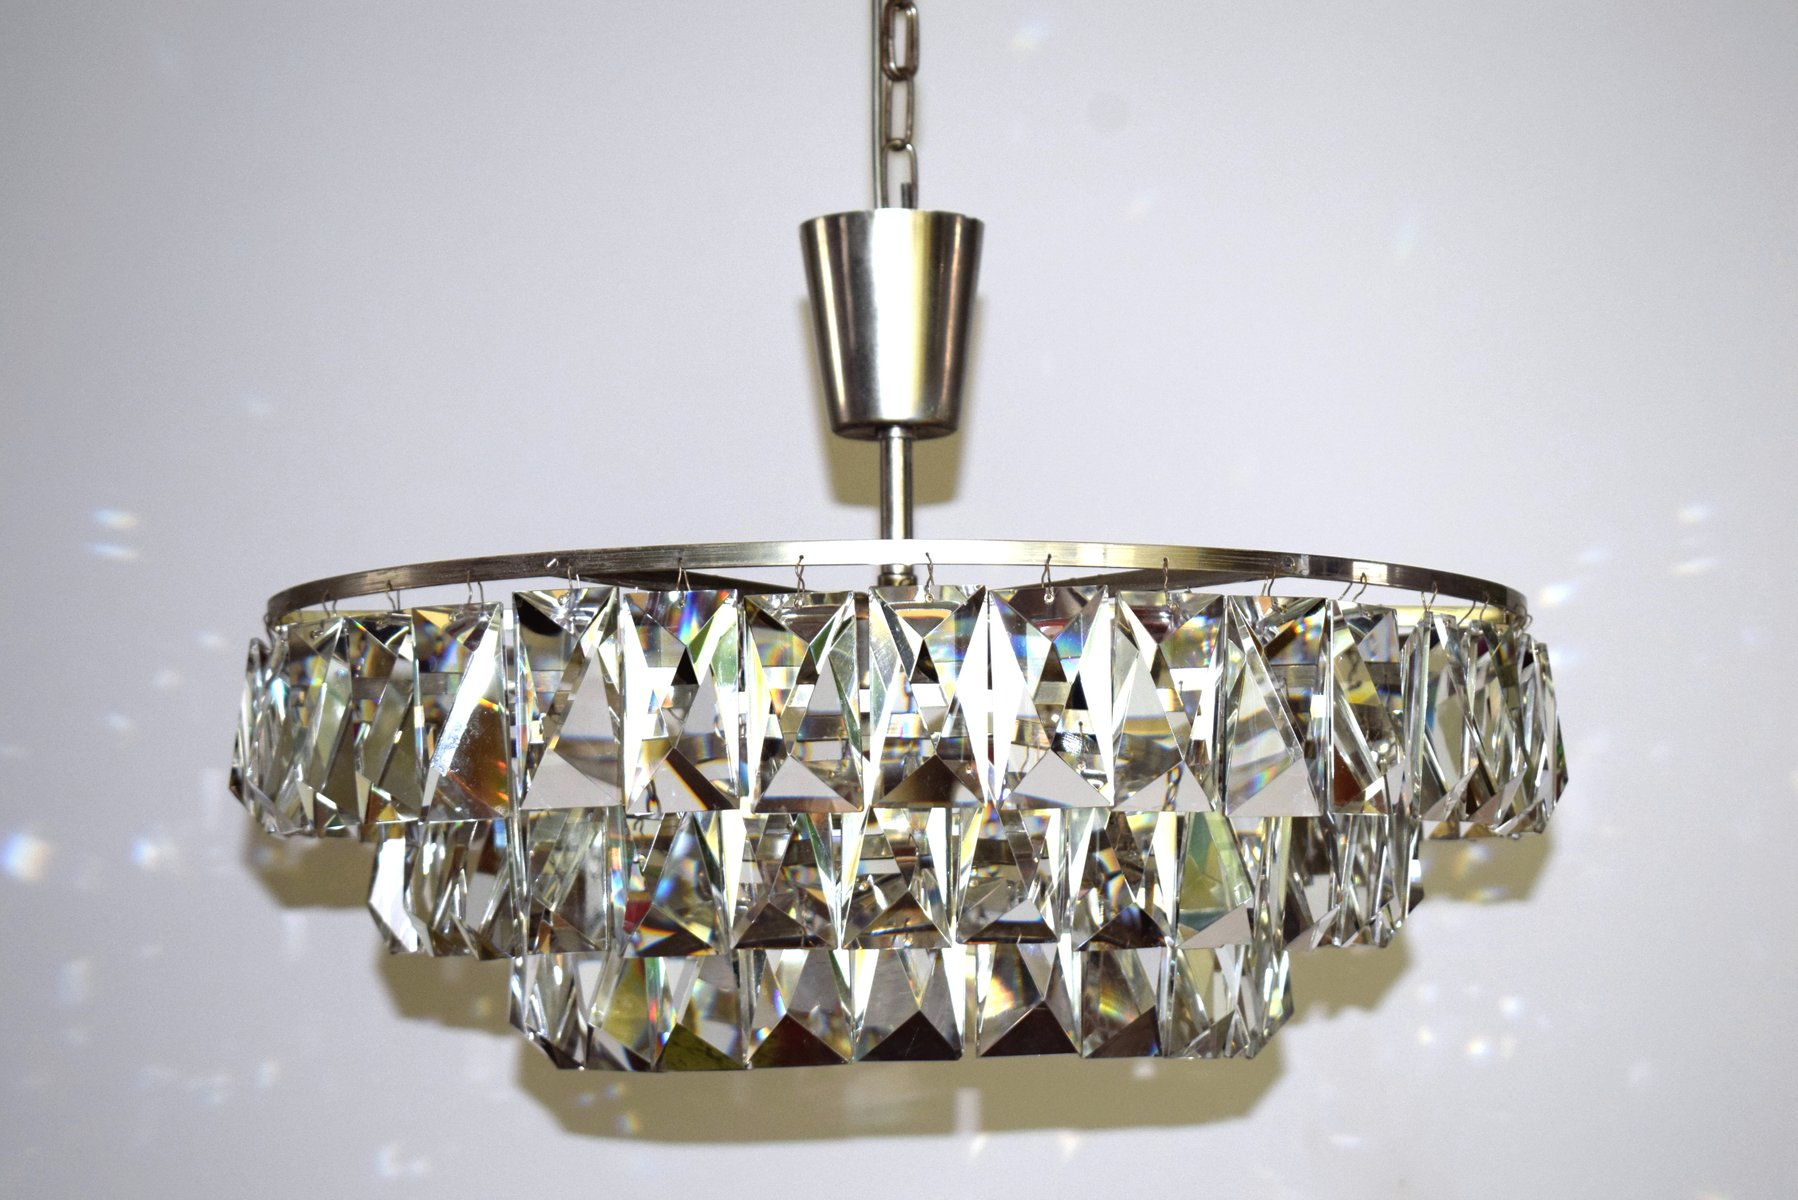 Austrian Crystal Chandelier from Bakalowits & Sohne 1960s